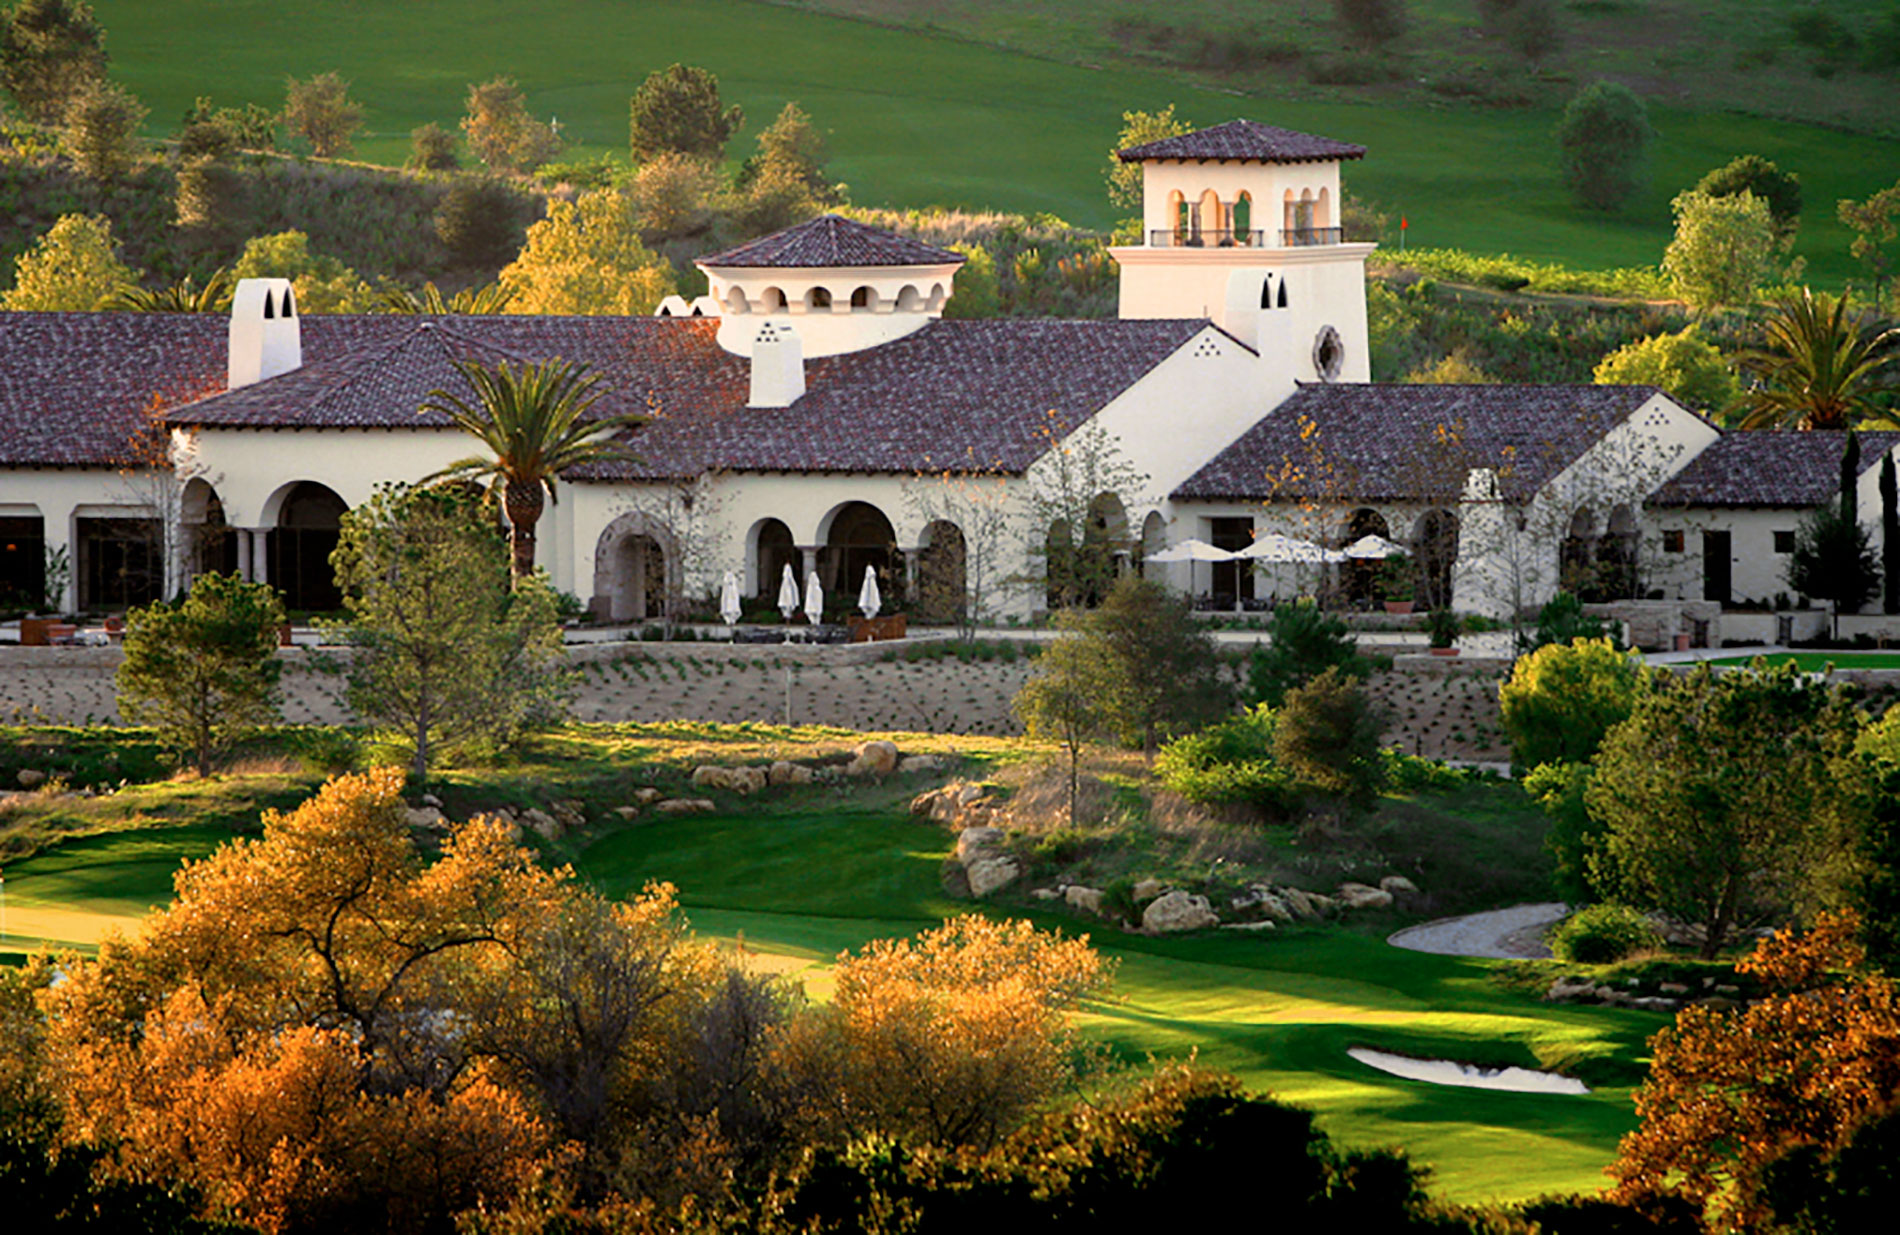 Shady Canyon Golf Club in Irvine - California Golf Courses